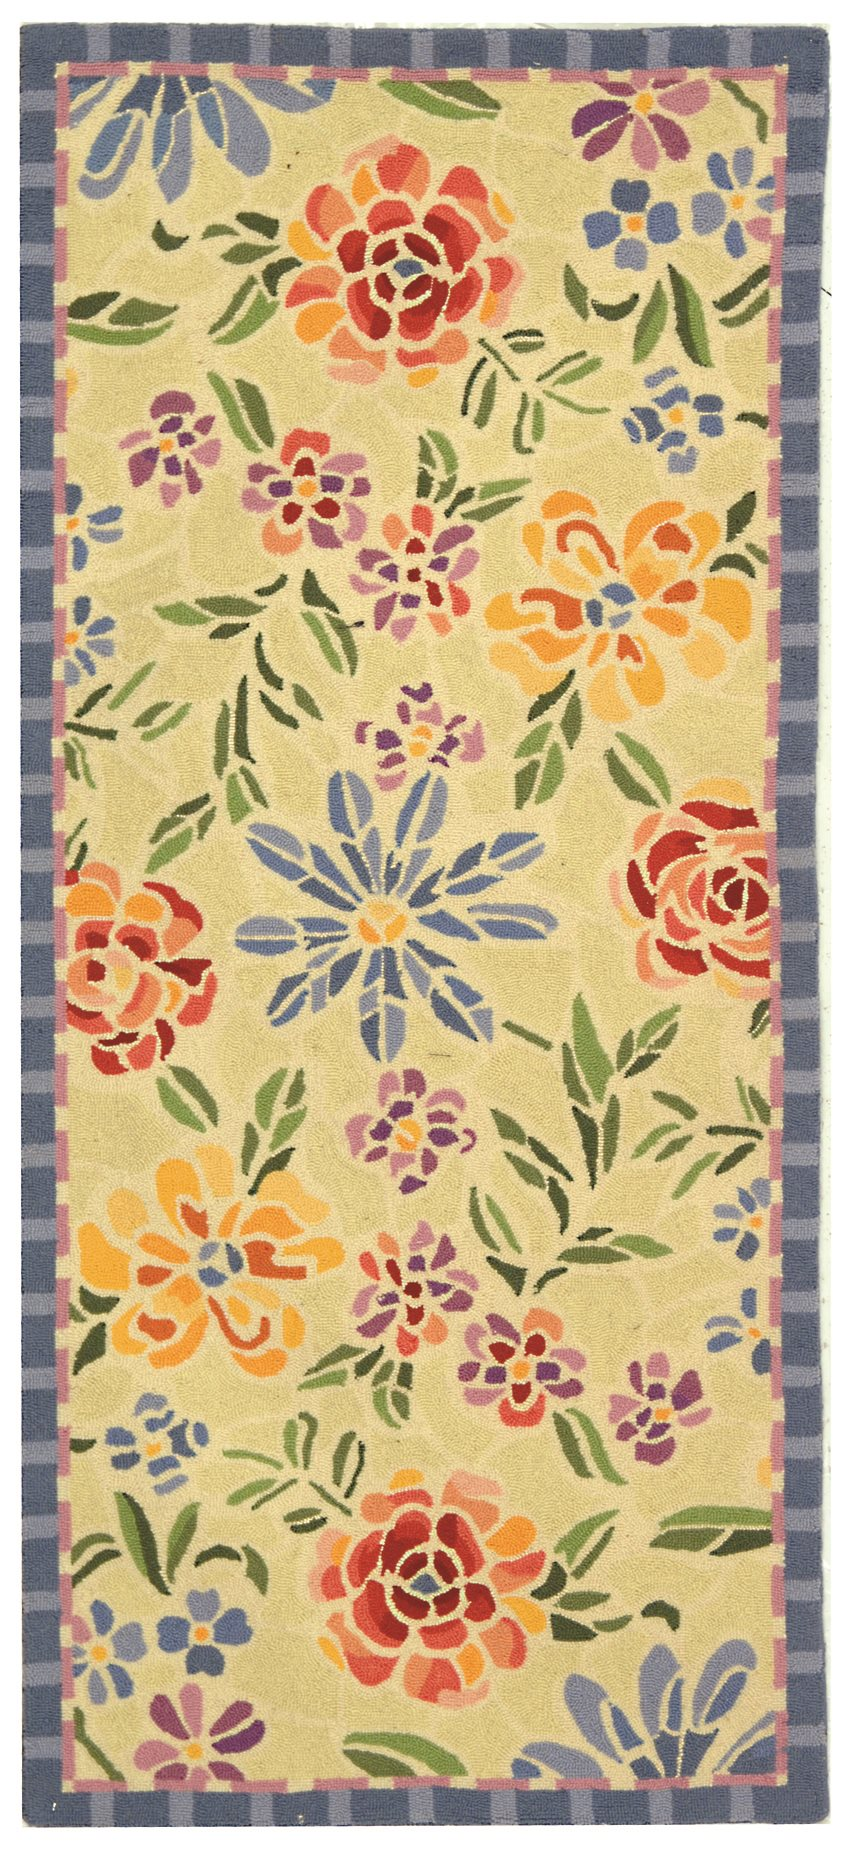 Safavieh Hk214a Chelsea Country Amp Floral Hand Hooked Wool